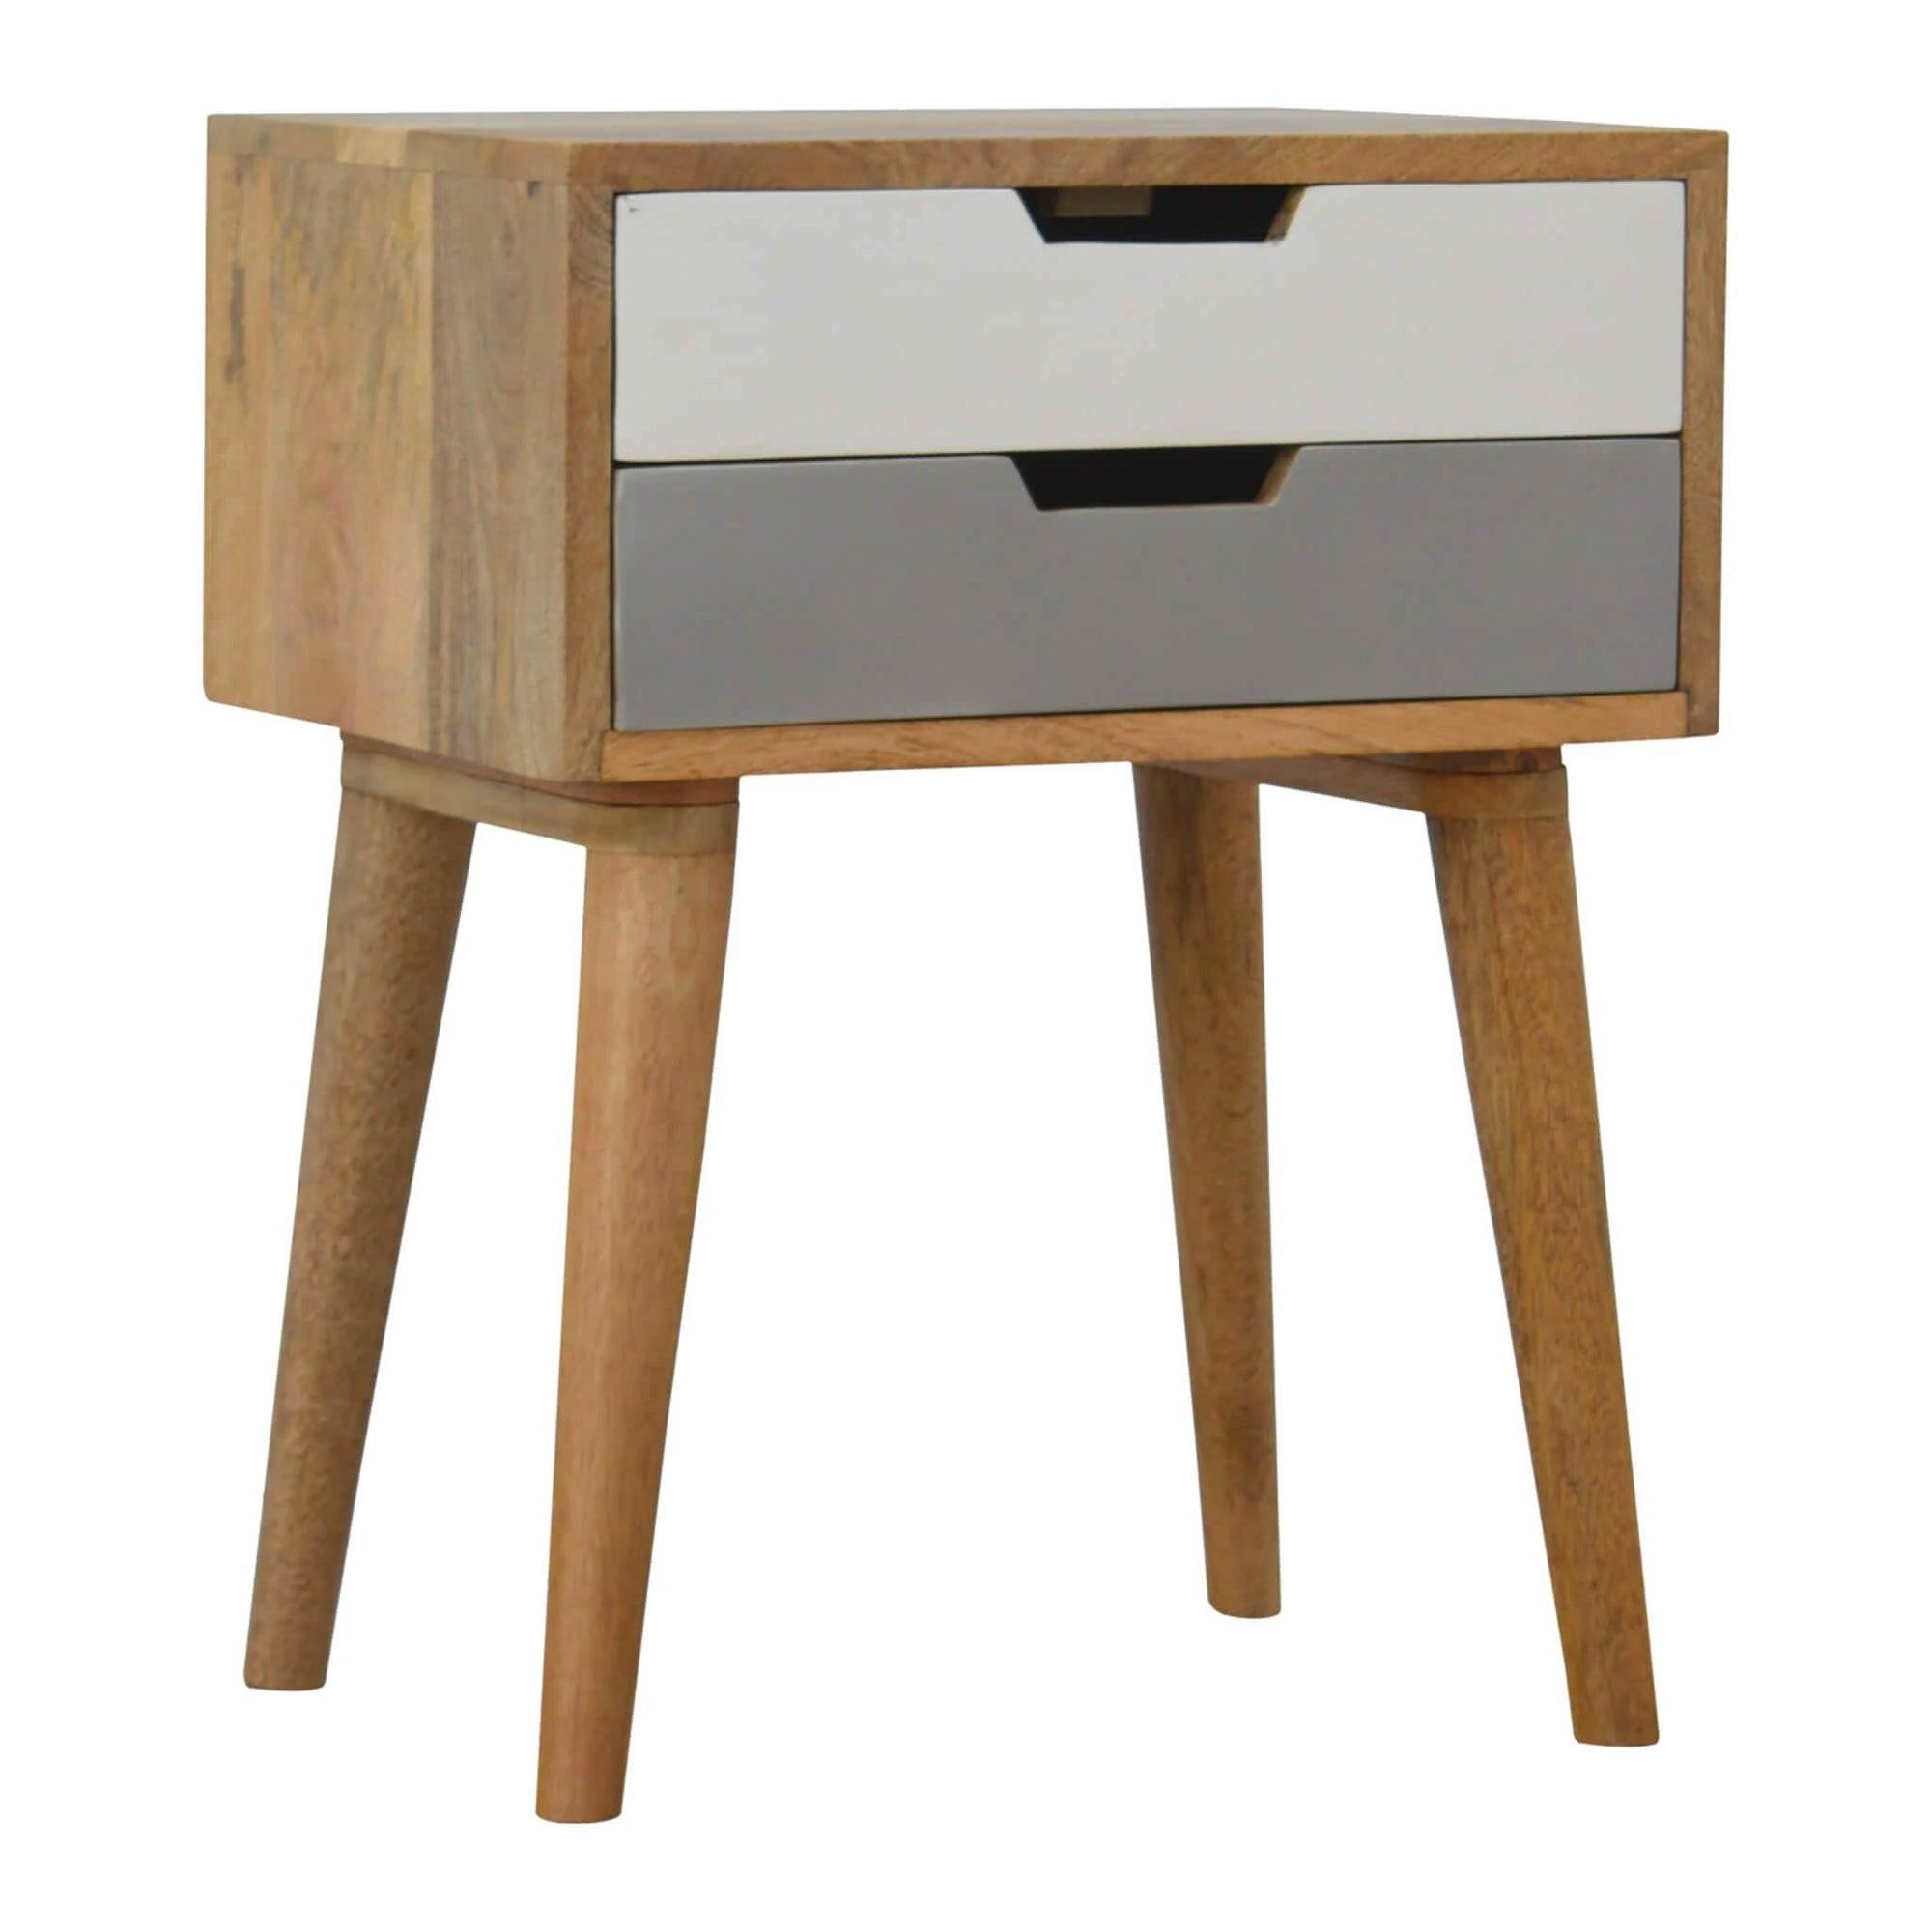 Artisan Blue 2 Drawer Bedside table by Roseland Furniture